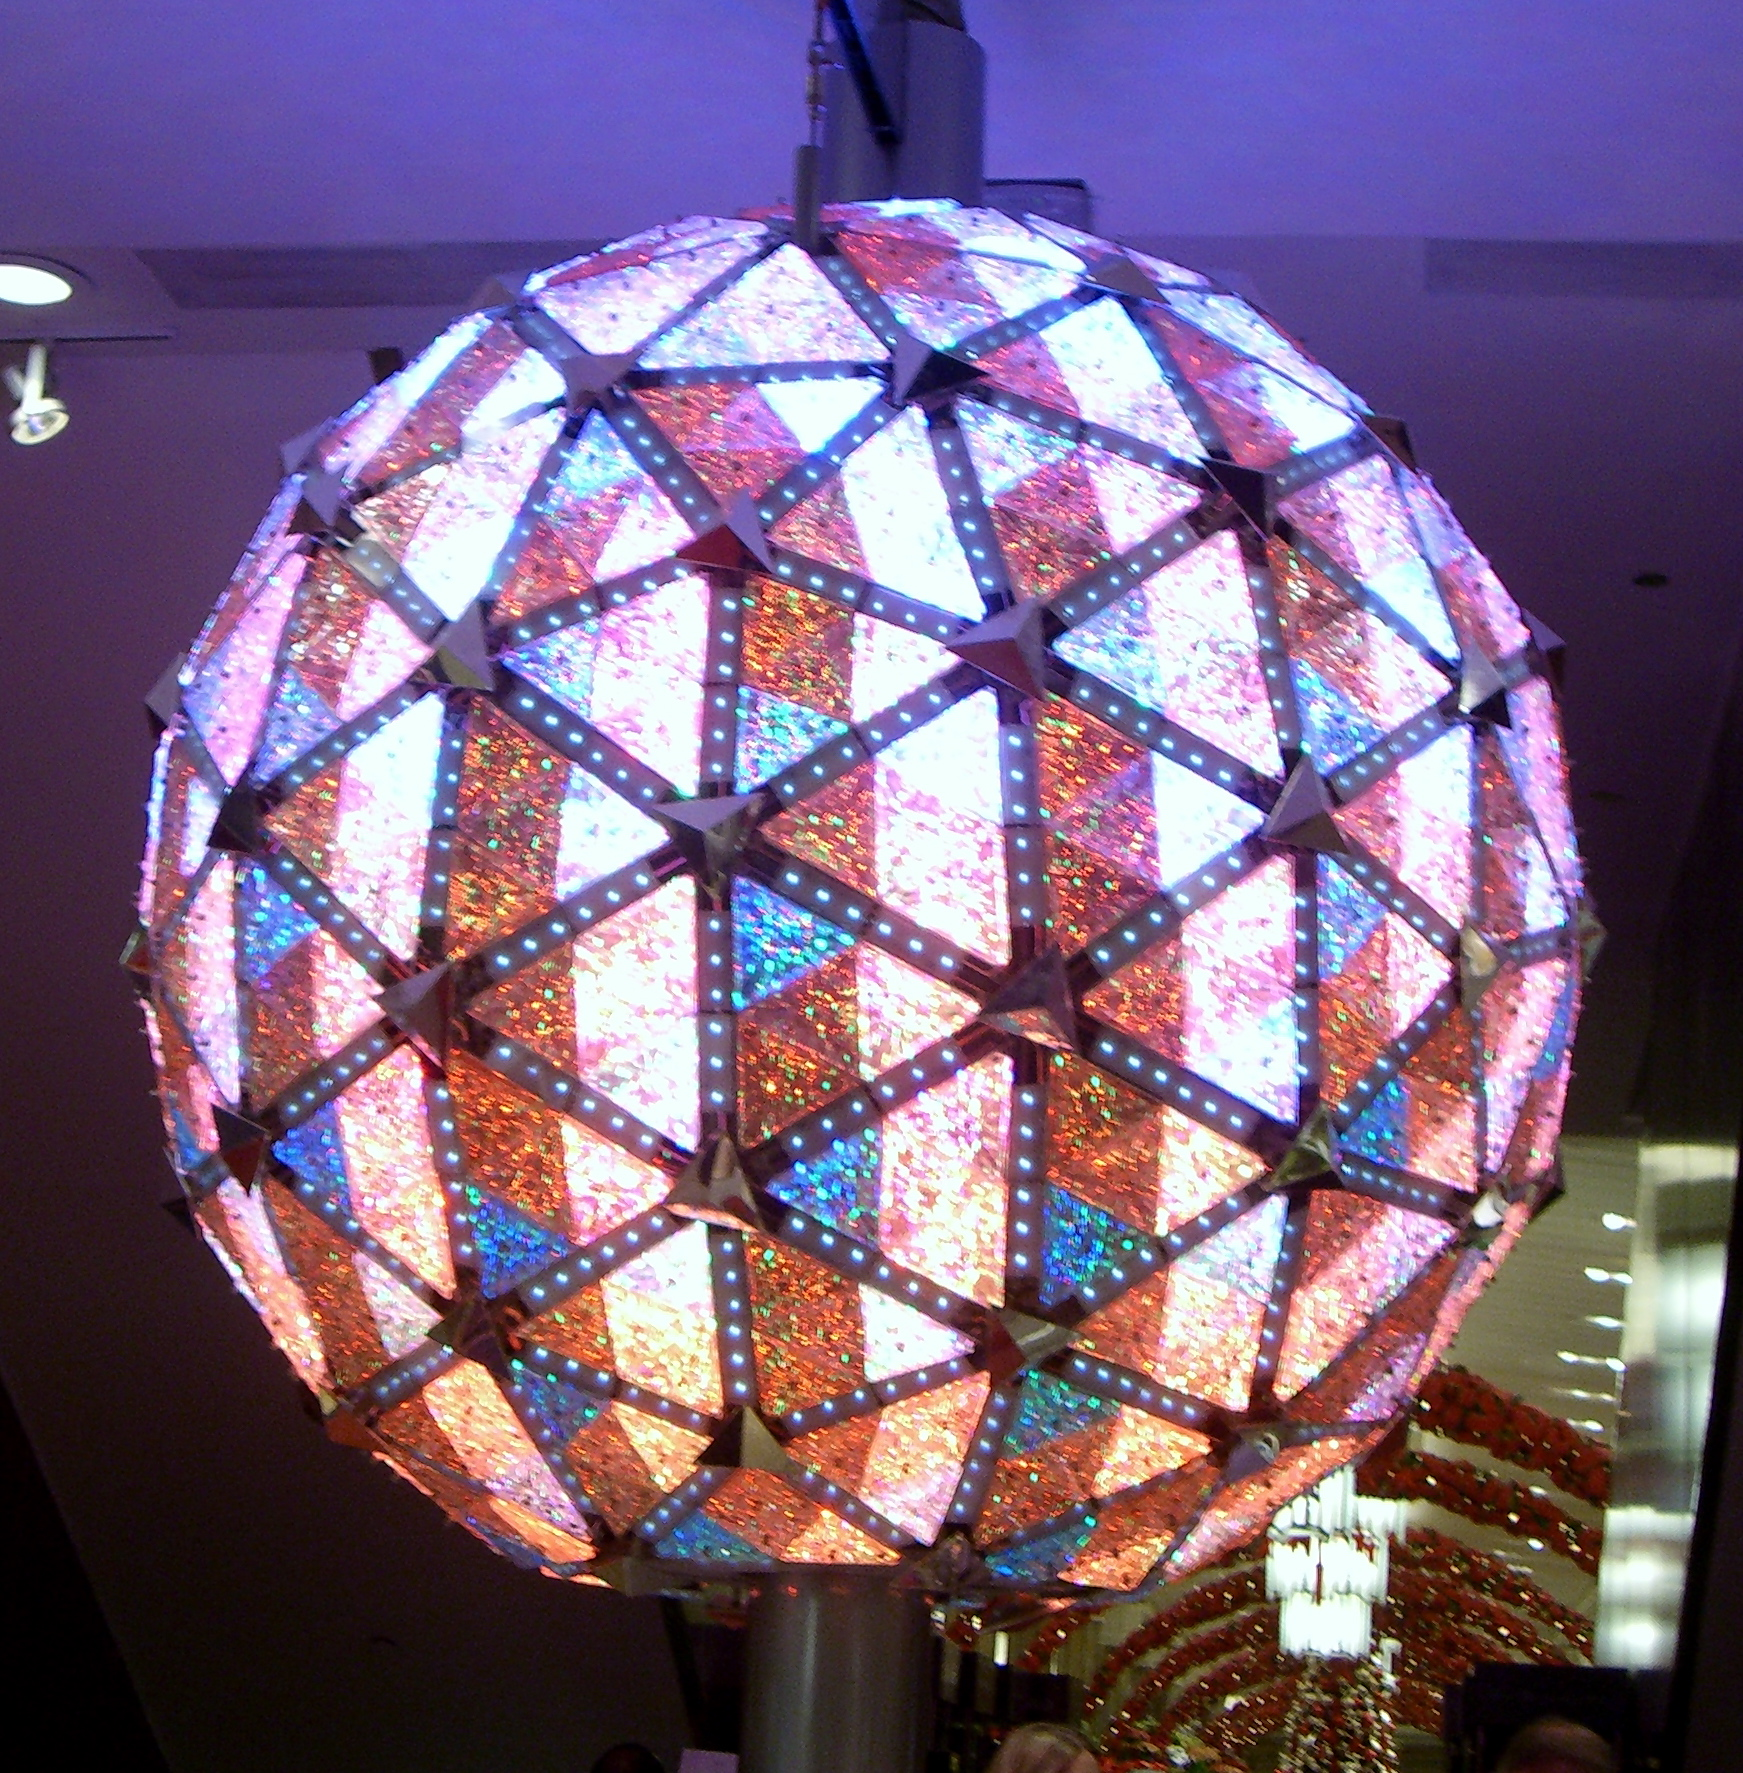 5 Things You May Not Know About the New Year's Eve Ball Drop from Remke - Blog.Remke.com